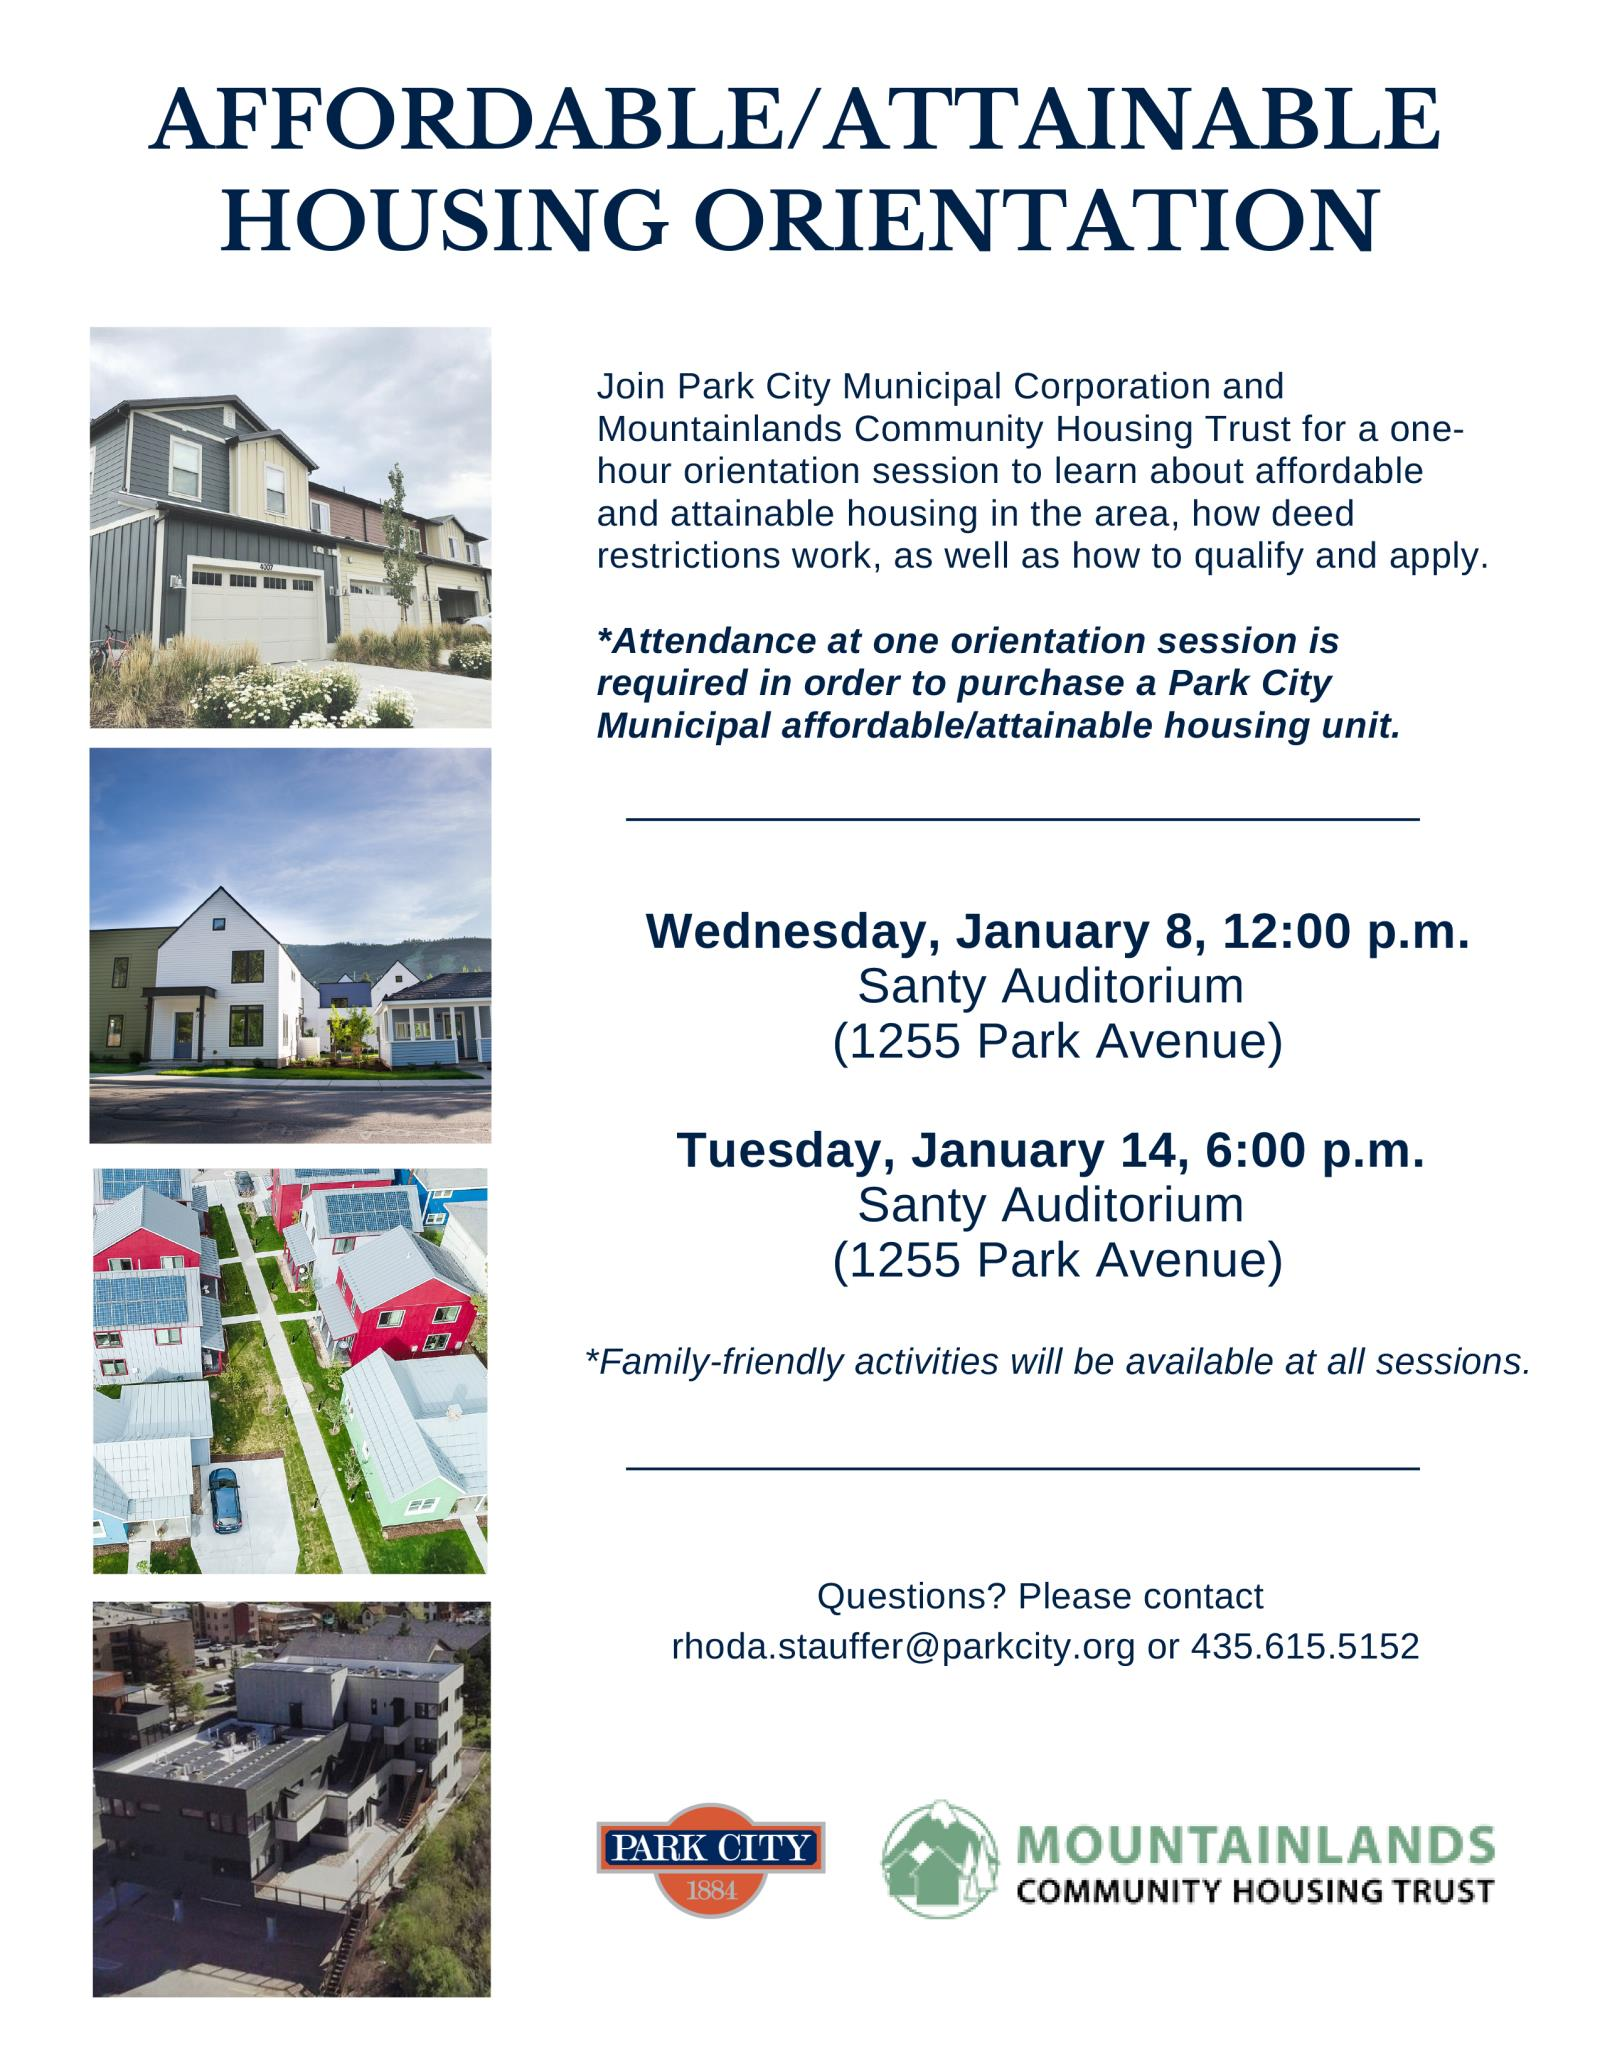 12.11_UPDATED - Affordable_Attainable Housing Orientation FLYER_2019